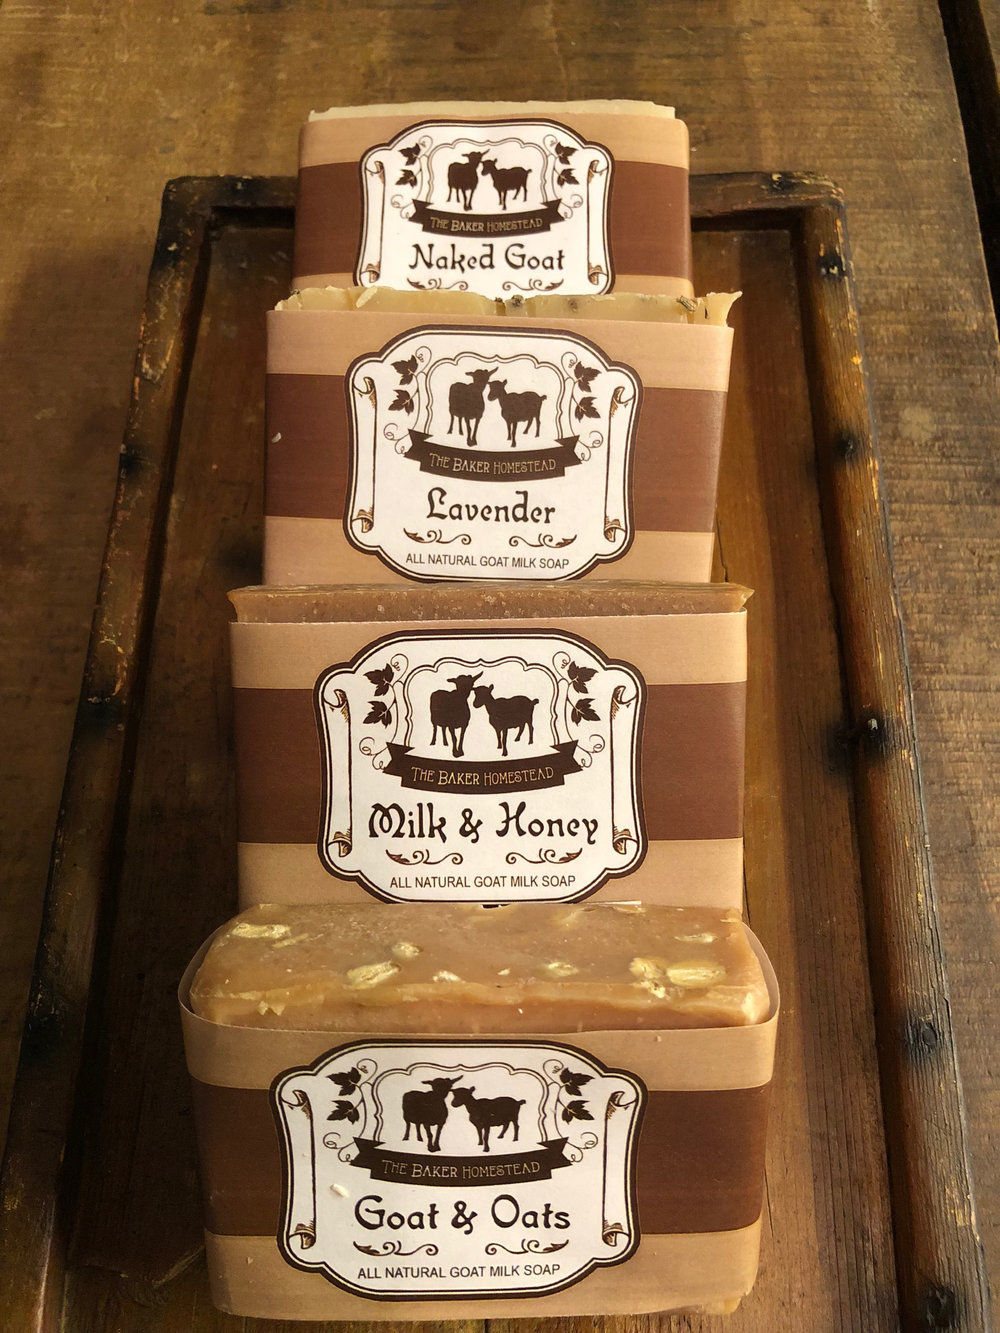 Soap made with raw goat milk can truly benefit your skin's health. Goat milk soap is wonderful for people with dry or sensitive skin.   - Regardless of whether your skin is healthy or not, it will certainly benefit from using a handmade soap, made with raw goat milk fresh from the farm.